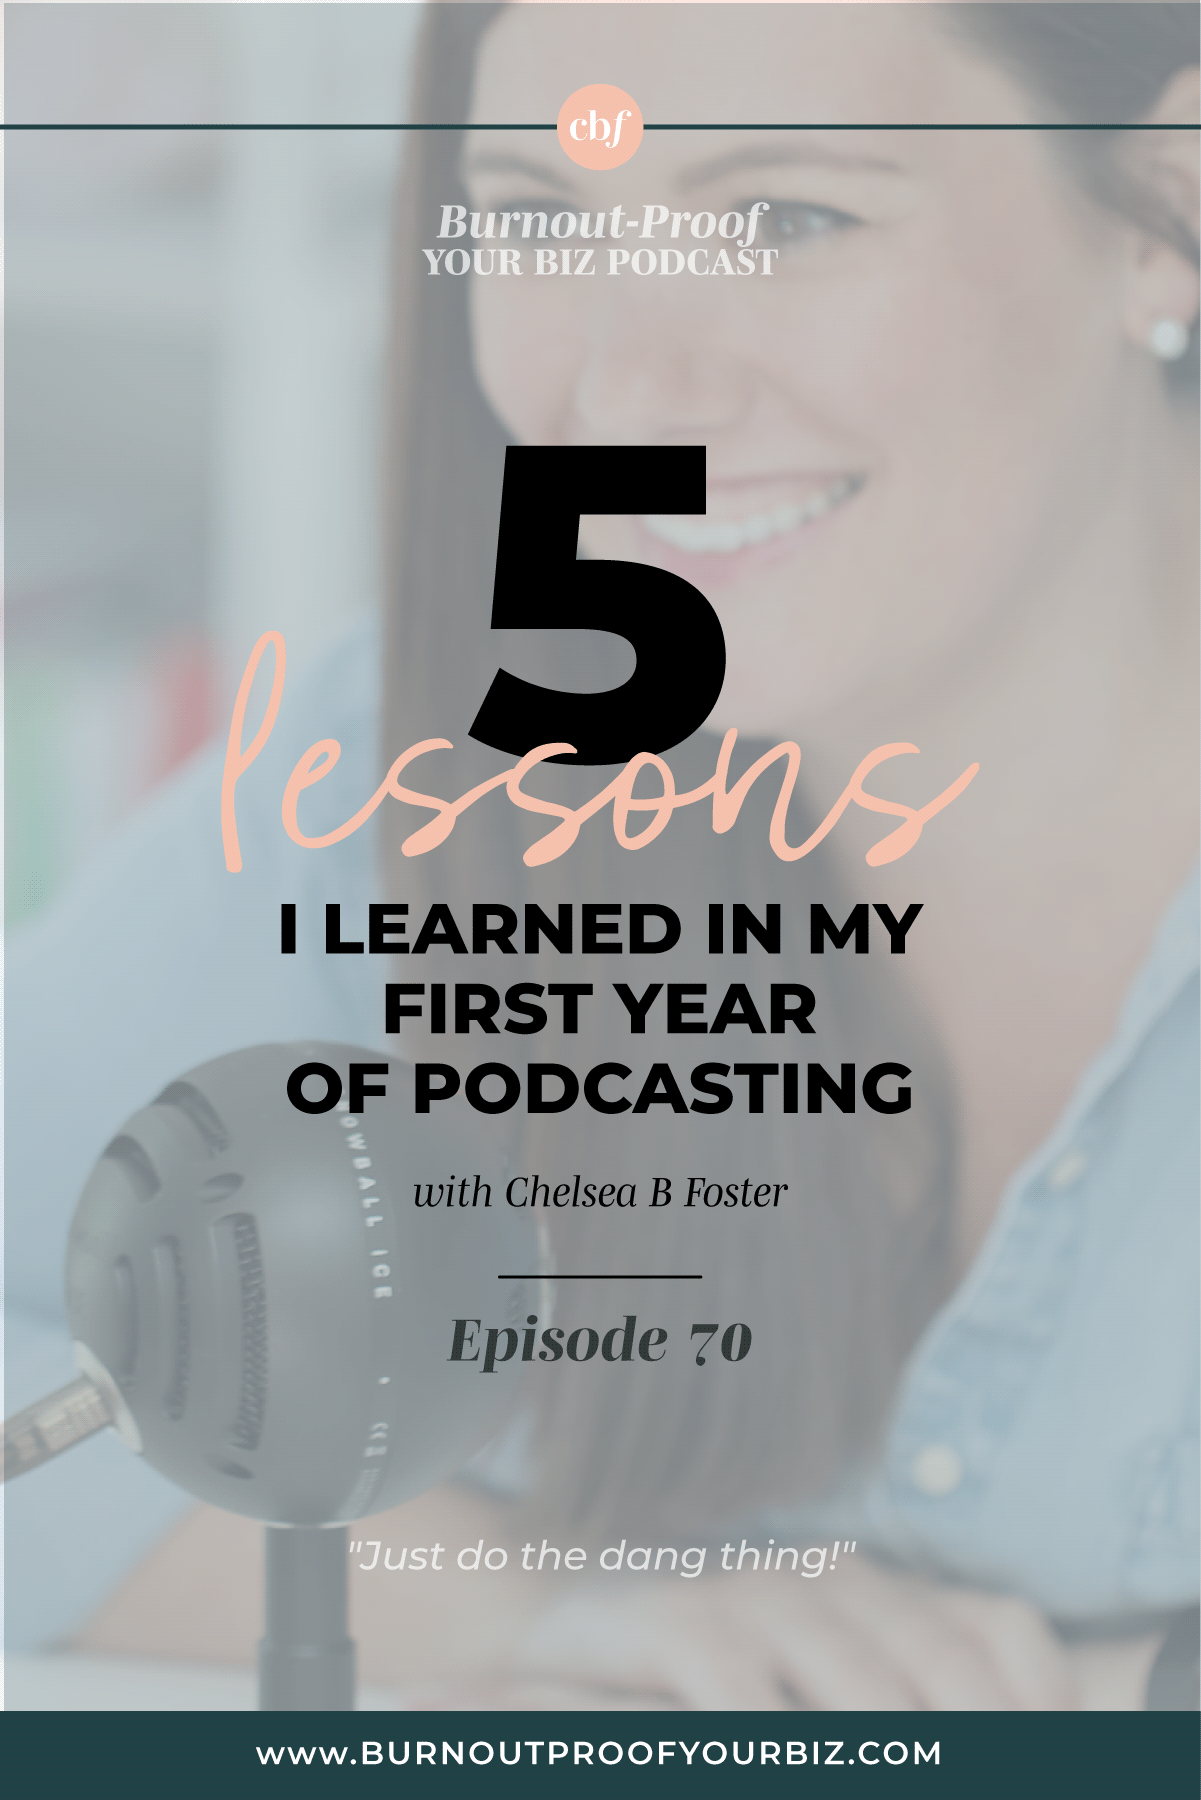 Burnout-Proof Your Biz Podcast with Chelsea B Foster | Episode 070 - Lessons Learned from 1 Year of Podcasting